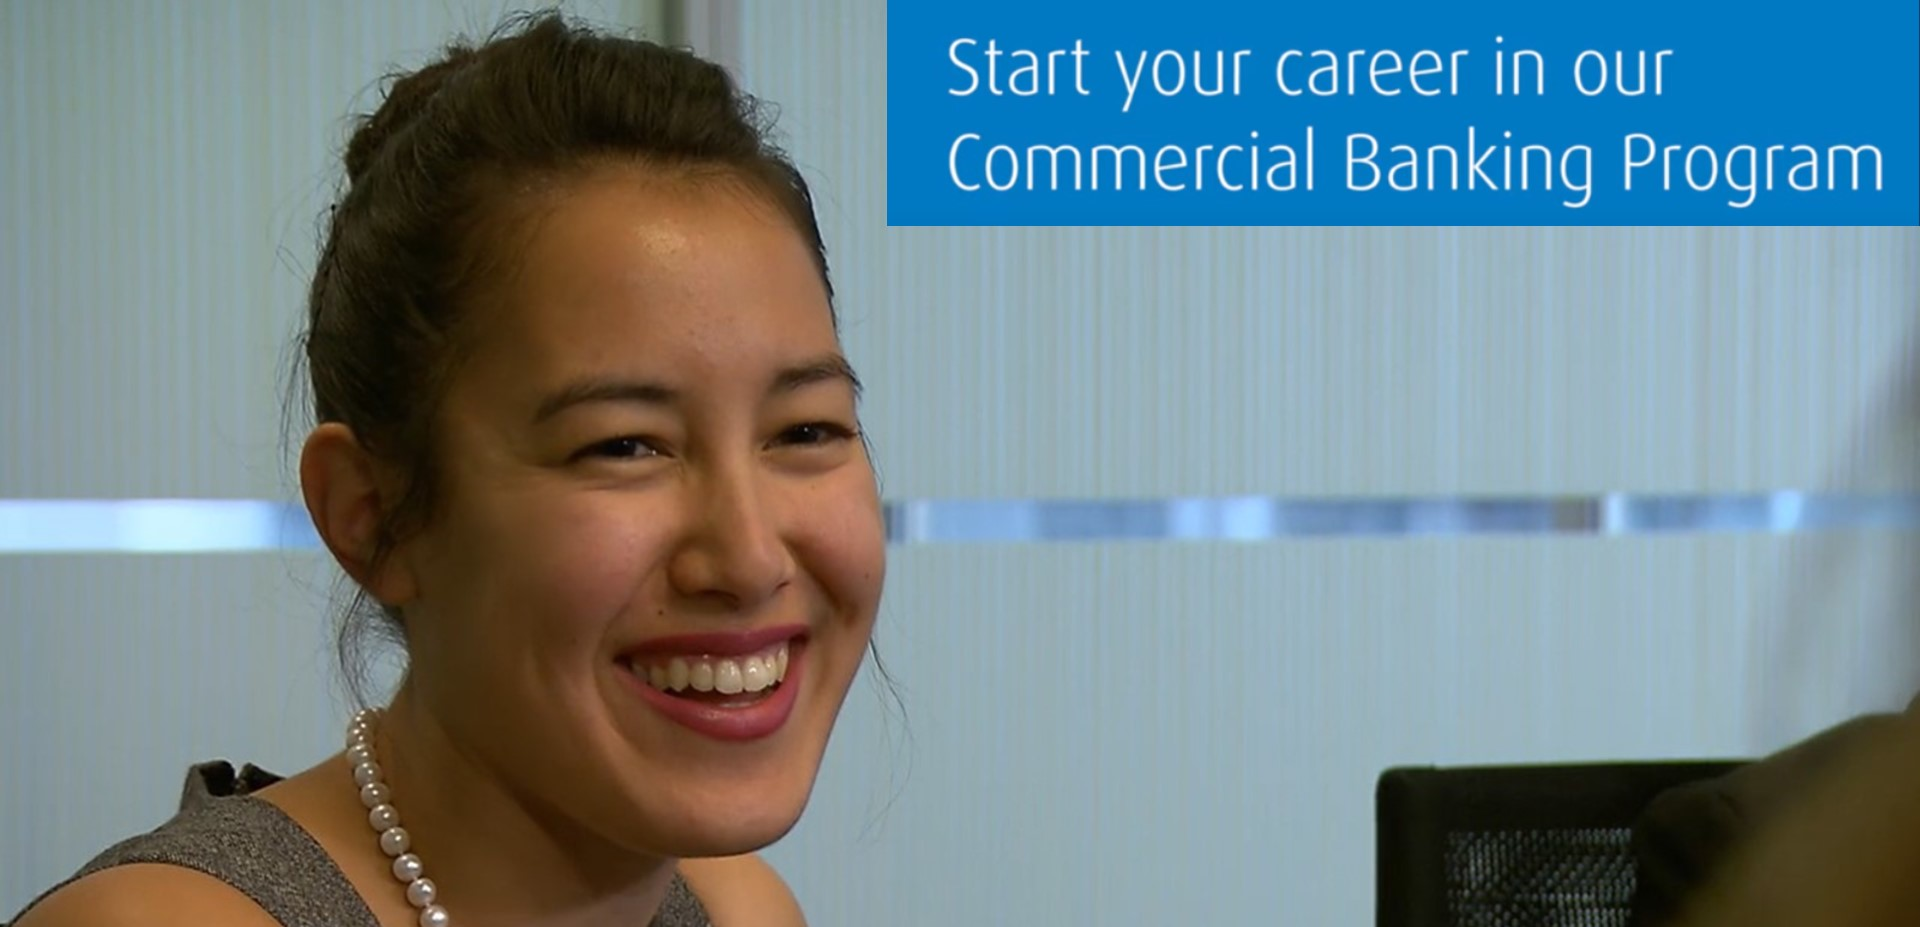 Female employee laughing next to video title